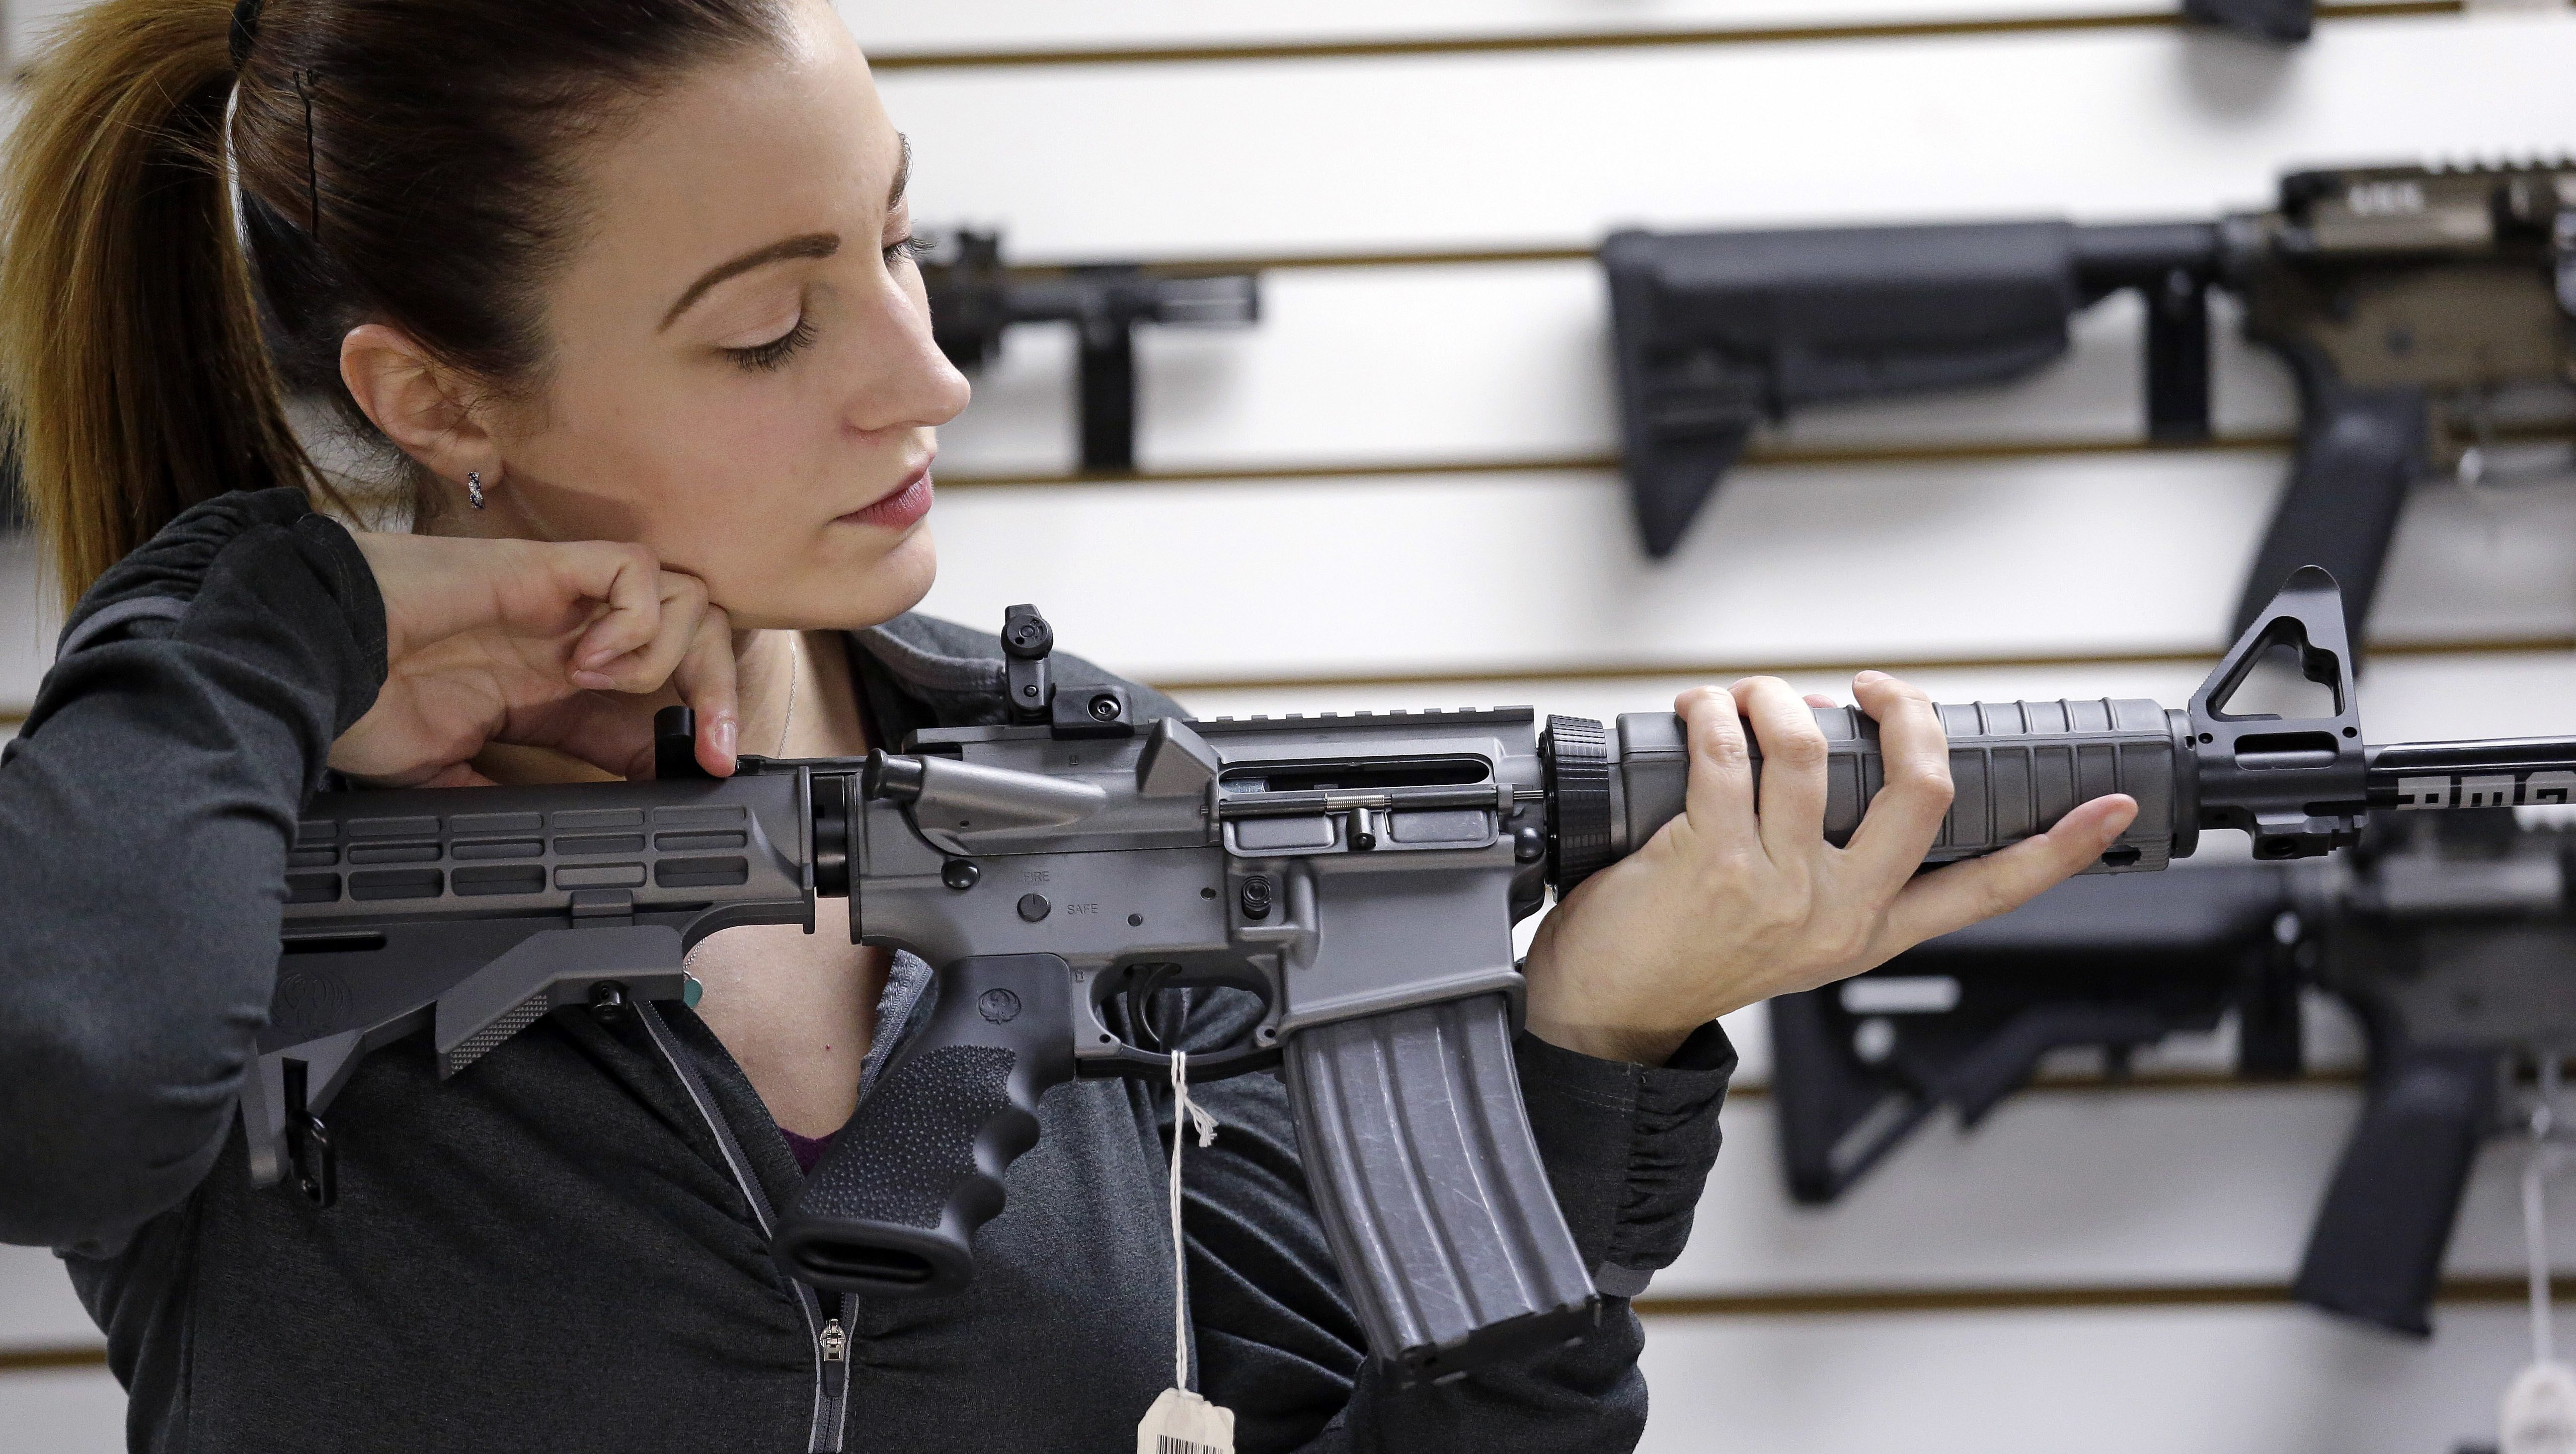 Gun shop owner Tiffany Teasdale-Causer demonstrates a Ruger AR-15 semi-automatic rifle, the same model, though in gray rather than black, used by the shooter in a Texas church massacre two days earlier, Tuesday, Nov. 7, 2017, in Lynnwood, Wash. Gun-rights supporters have seized on the Texas church massacre as proof of the well-worn saying that the best answer to a bad guy with a gun is a good guy with a gun. Gun-control advocates, meanwhile, say the tragedy shows once more that it is too easy to get a weapon in the U.S.